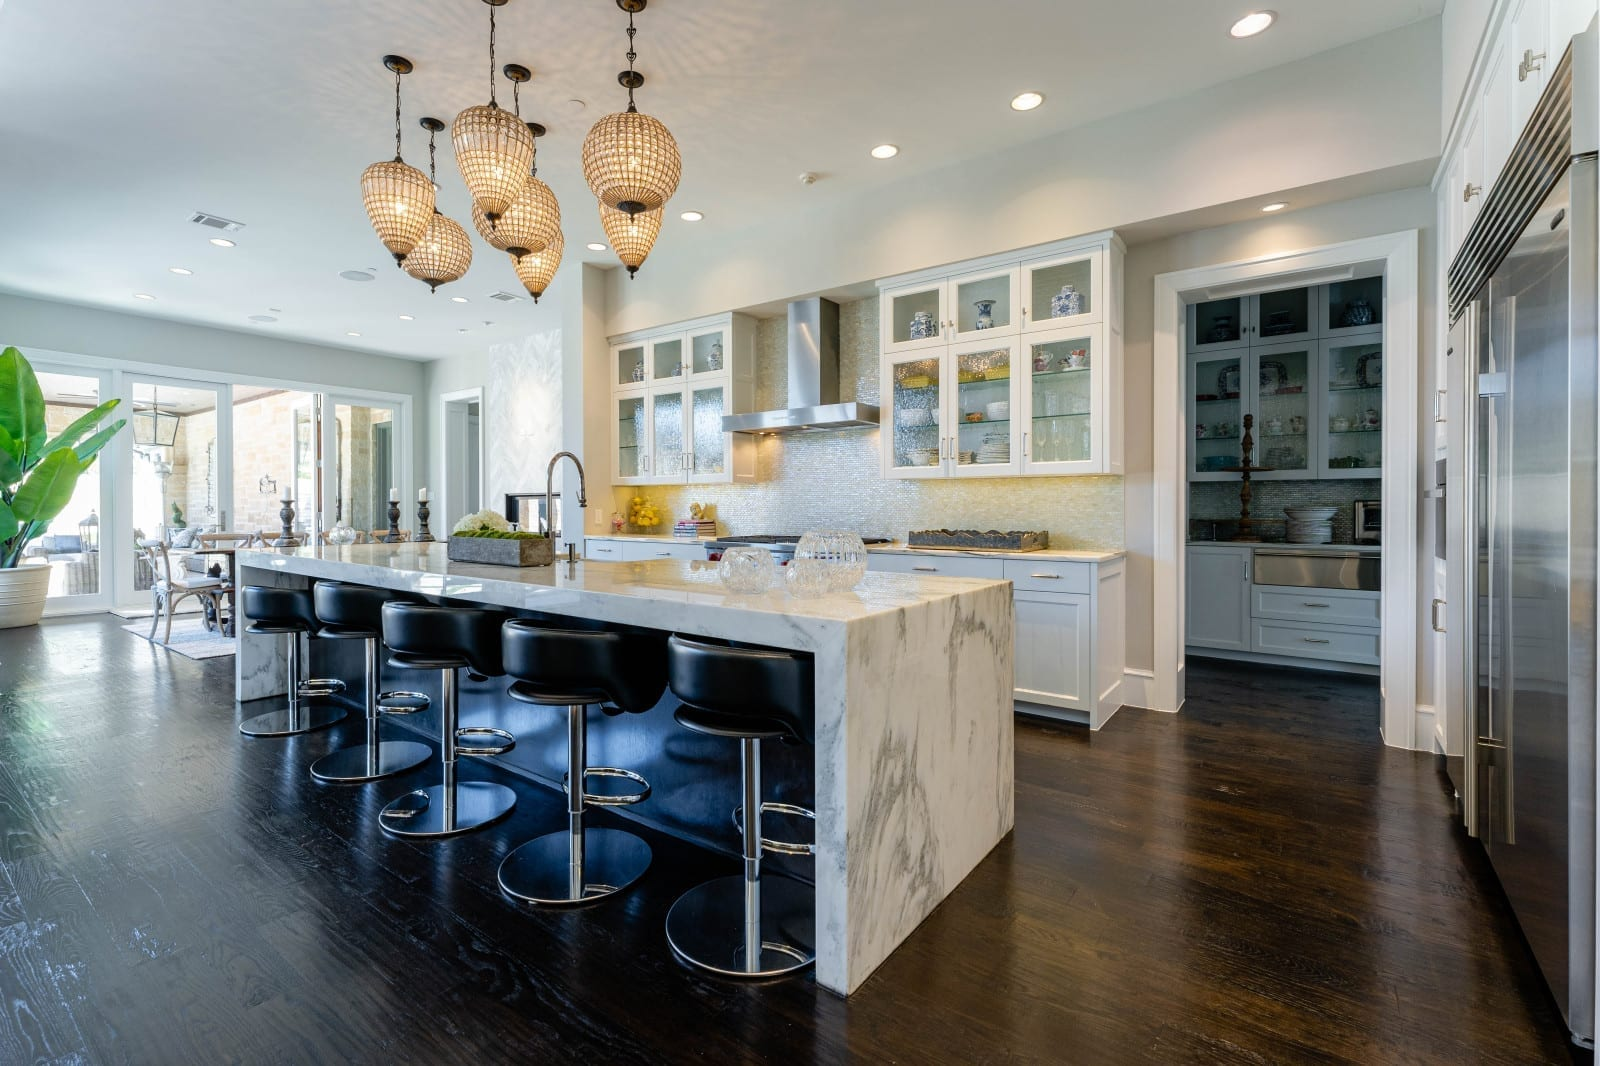 transitional modern style home designed by home builders in Dallas Texas 20 - Millennial Design + Build